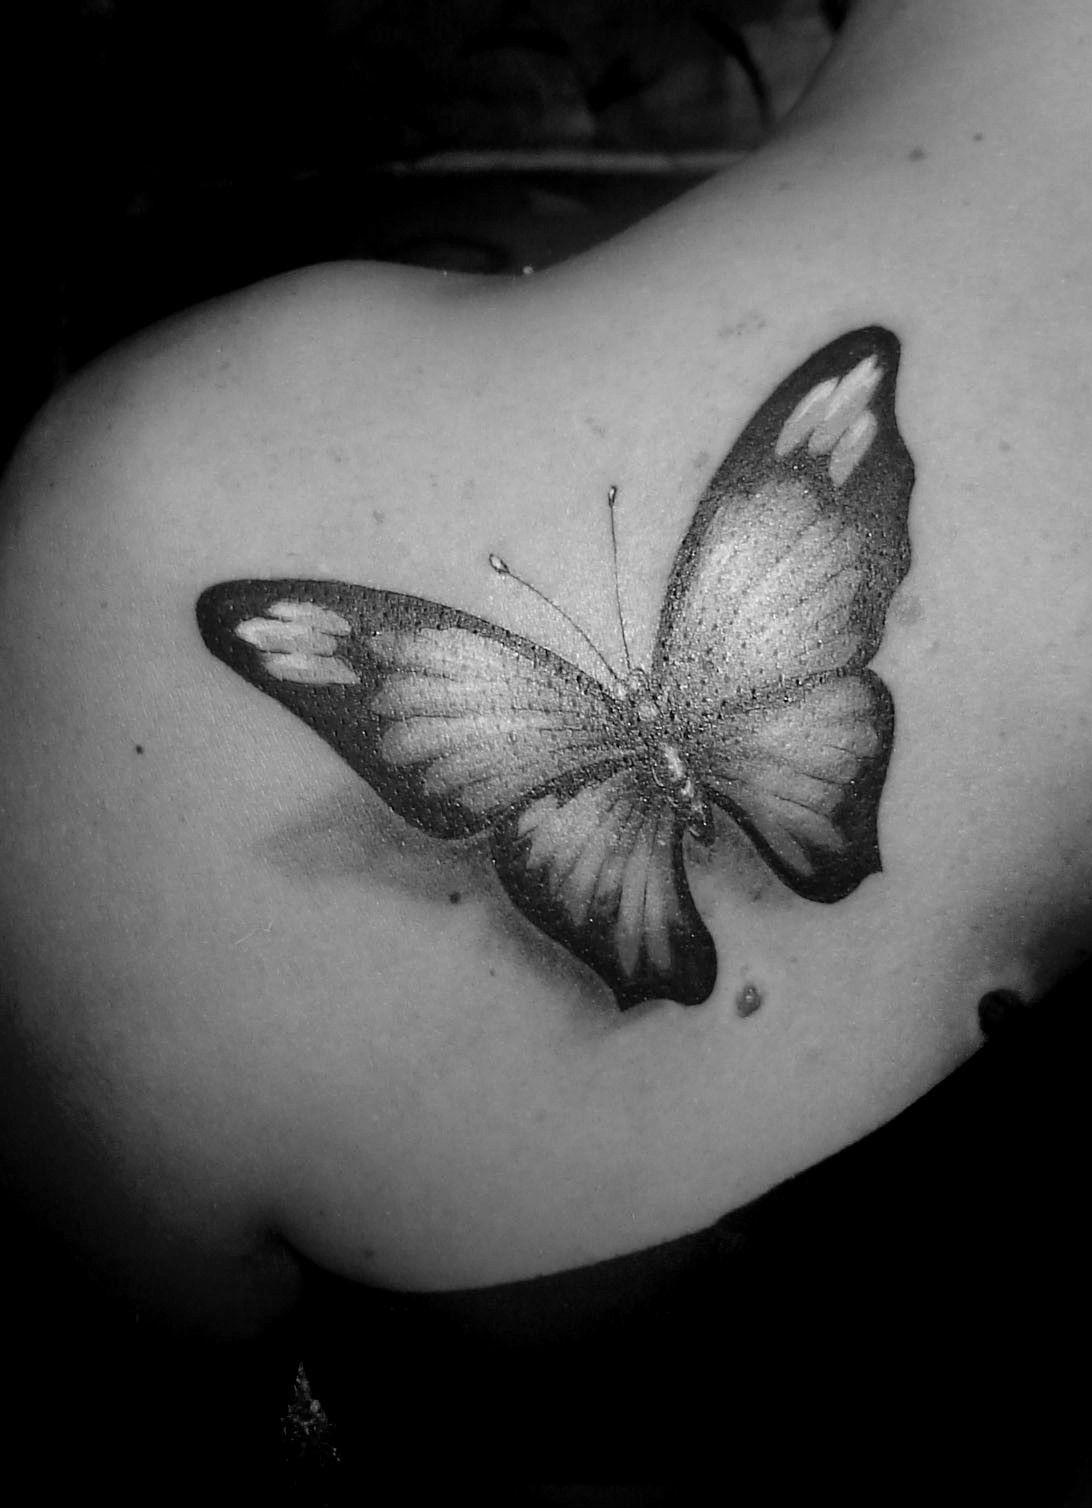 Realistic Black And White Butterfly And Small Geometric Figures Tattoo Design Geometric Tattoo Design Realistic Butterfly Tattoo Butterfly Tattoo